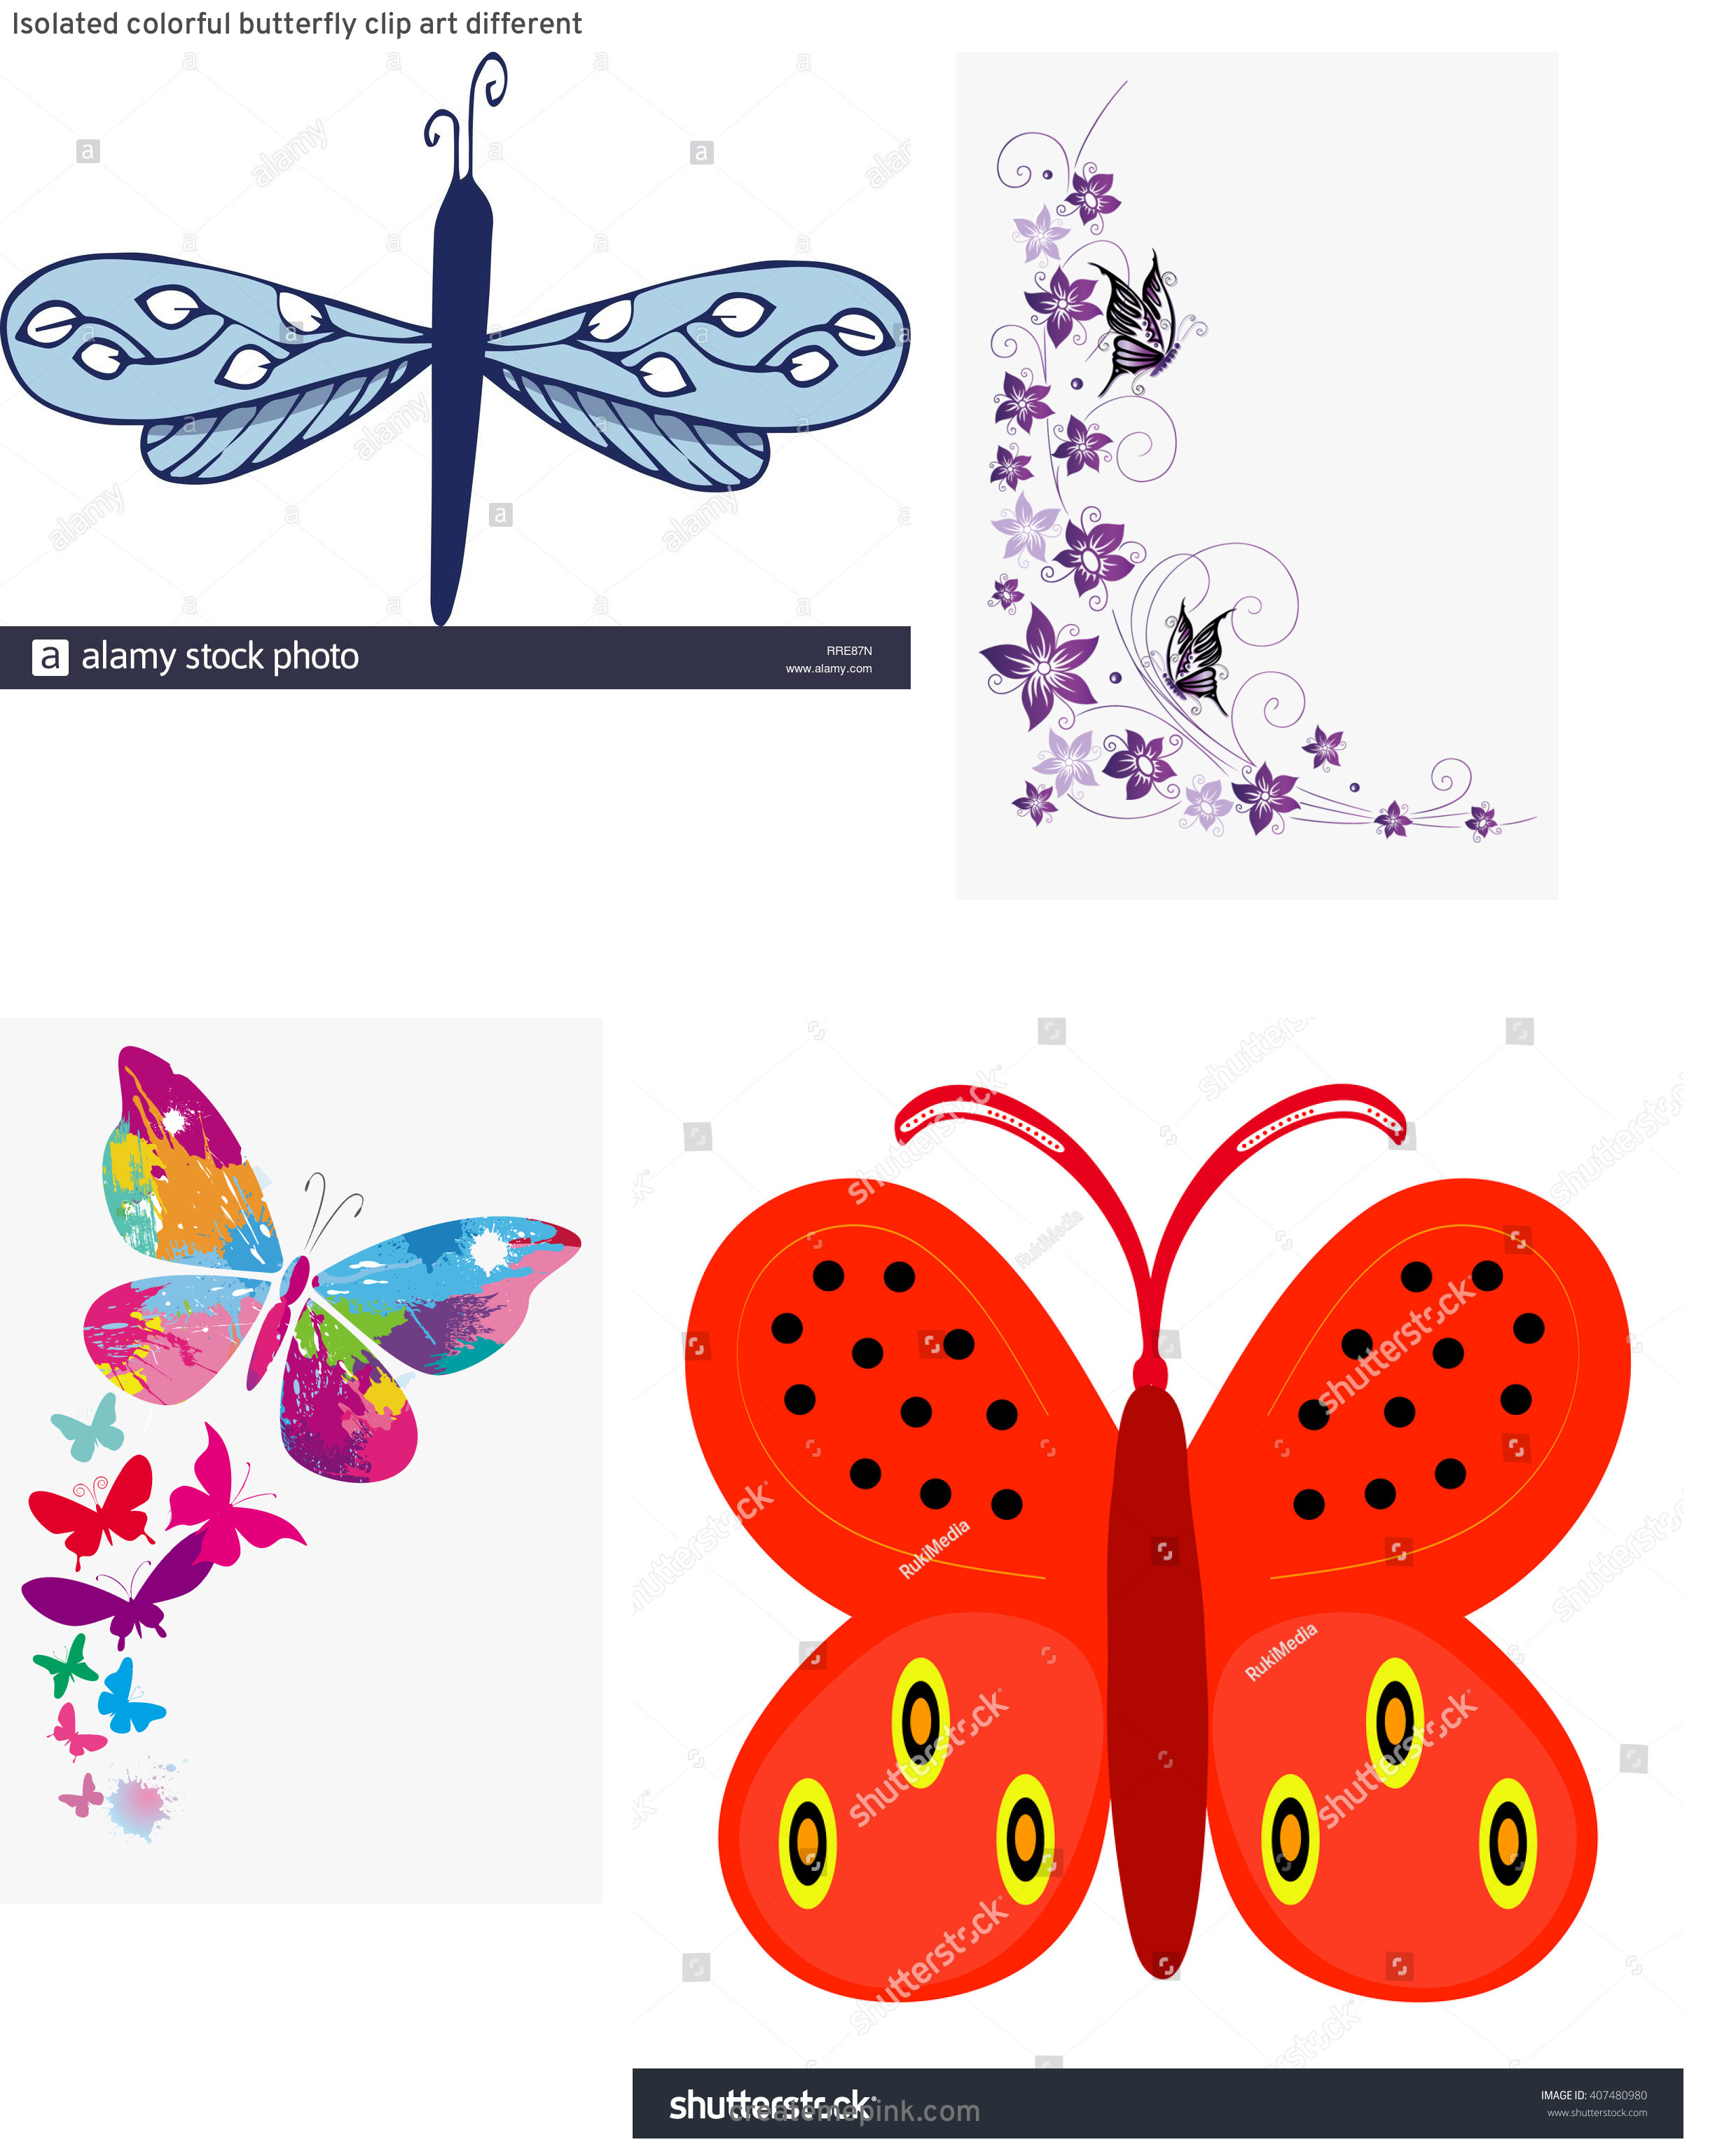 Butterfly Vector Graphics Clip Art: Isolated Colorful Butterfly Clip Art Different